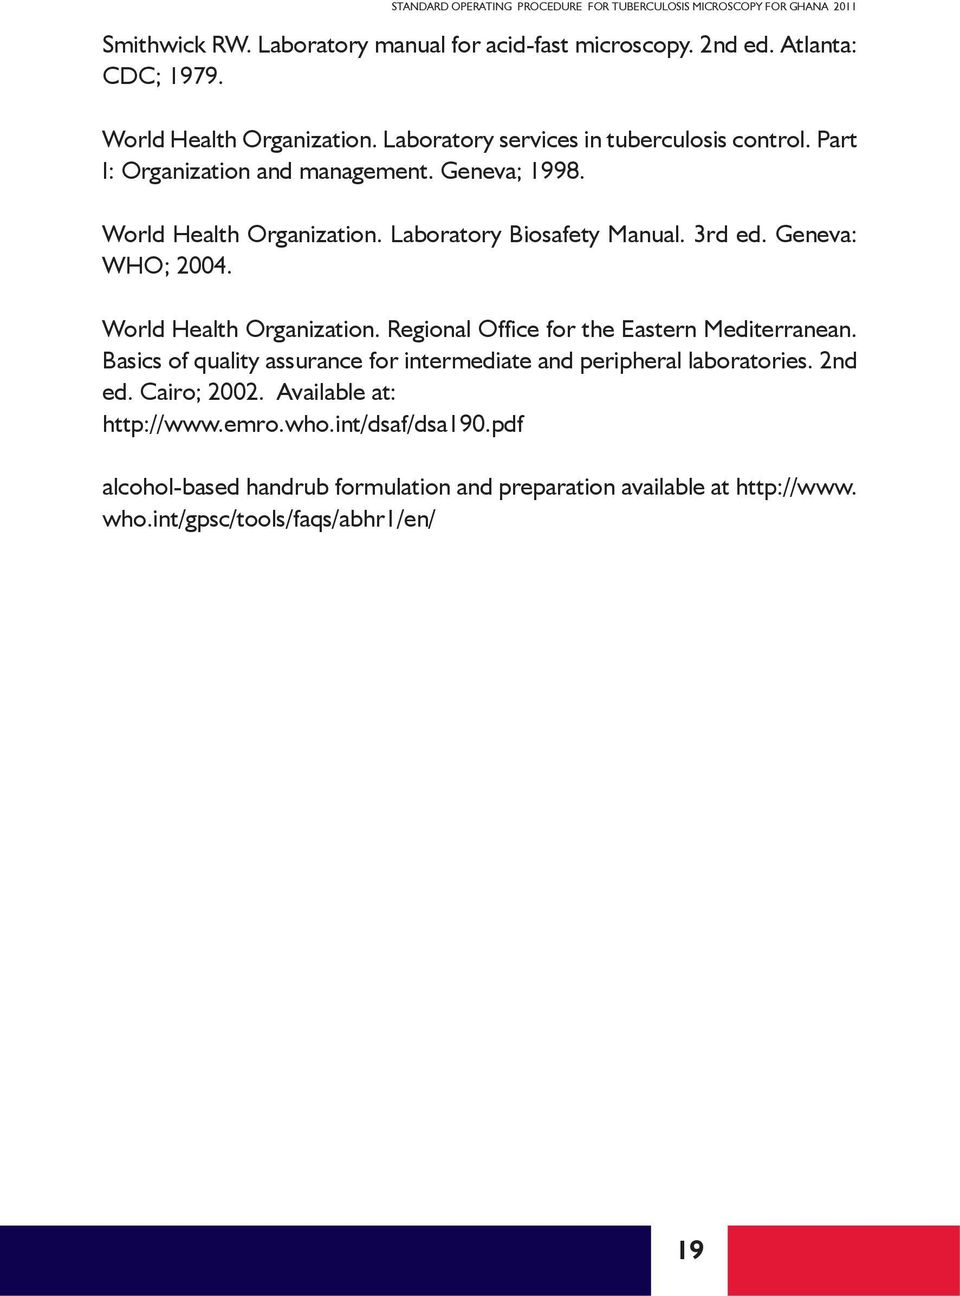 World Health Organization. Regional Office for the Eastern Mediterranean. Basics of quality assurance for intermediate and peripheral laboratories. 2nd ed.